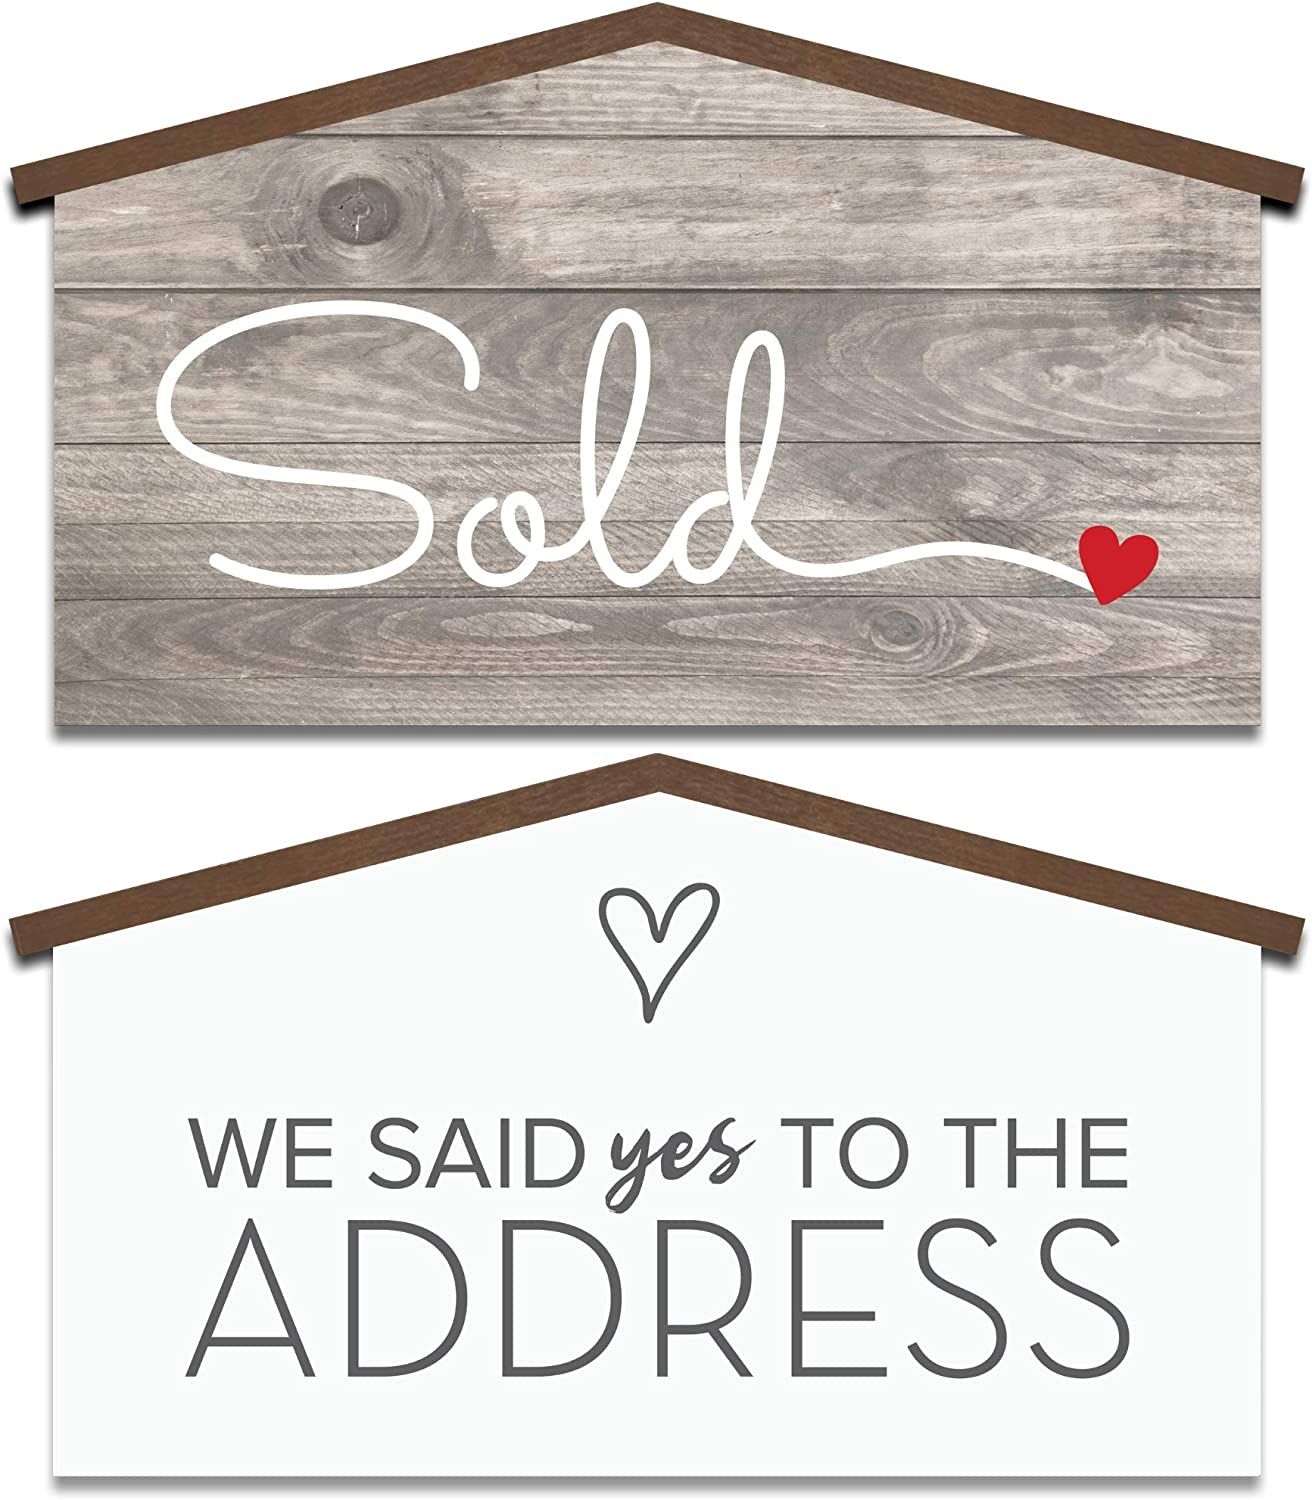 Real Estate House Shaped Sold Sign - We Said Yes to the Address - Agent Supplies and Signs- Photo Prop for Realtor - New Homeowner Gift- Closing Gifts for buyers - Our First Home Sweet Home Presents Small (17 inch)